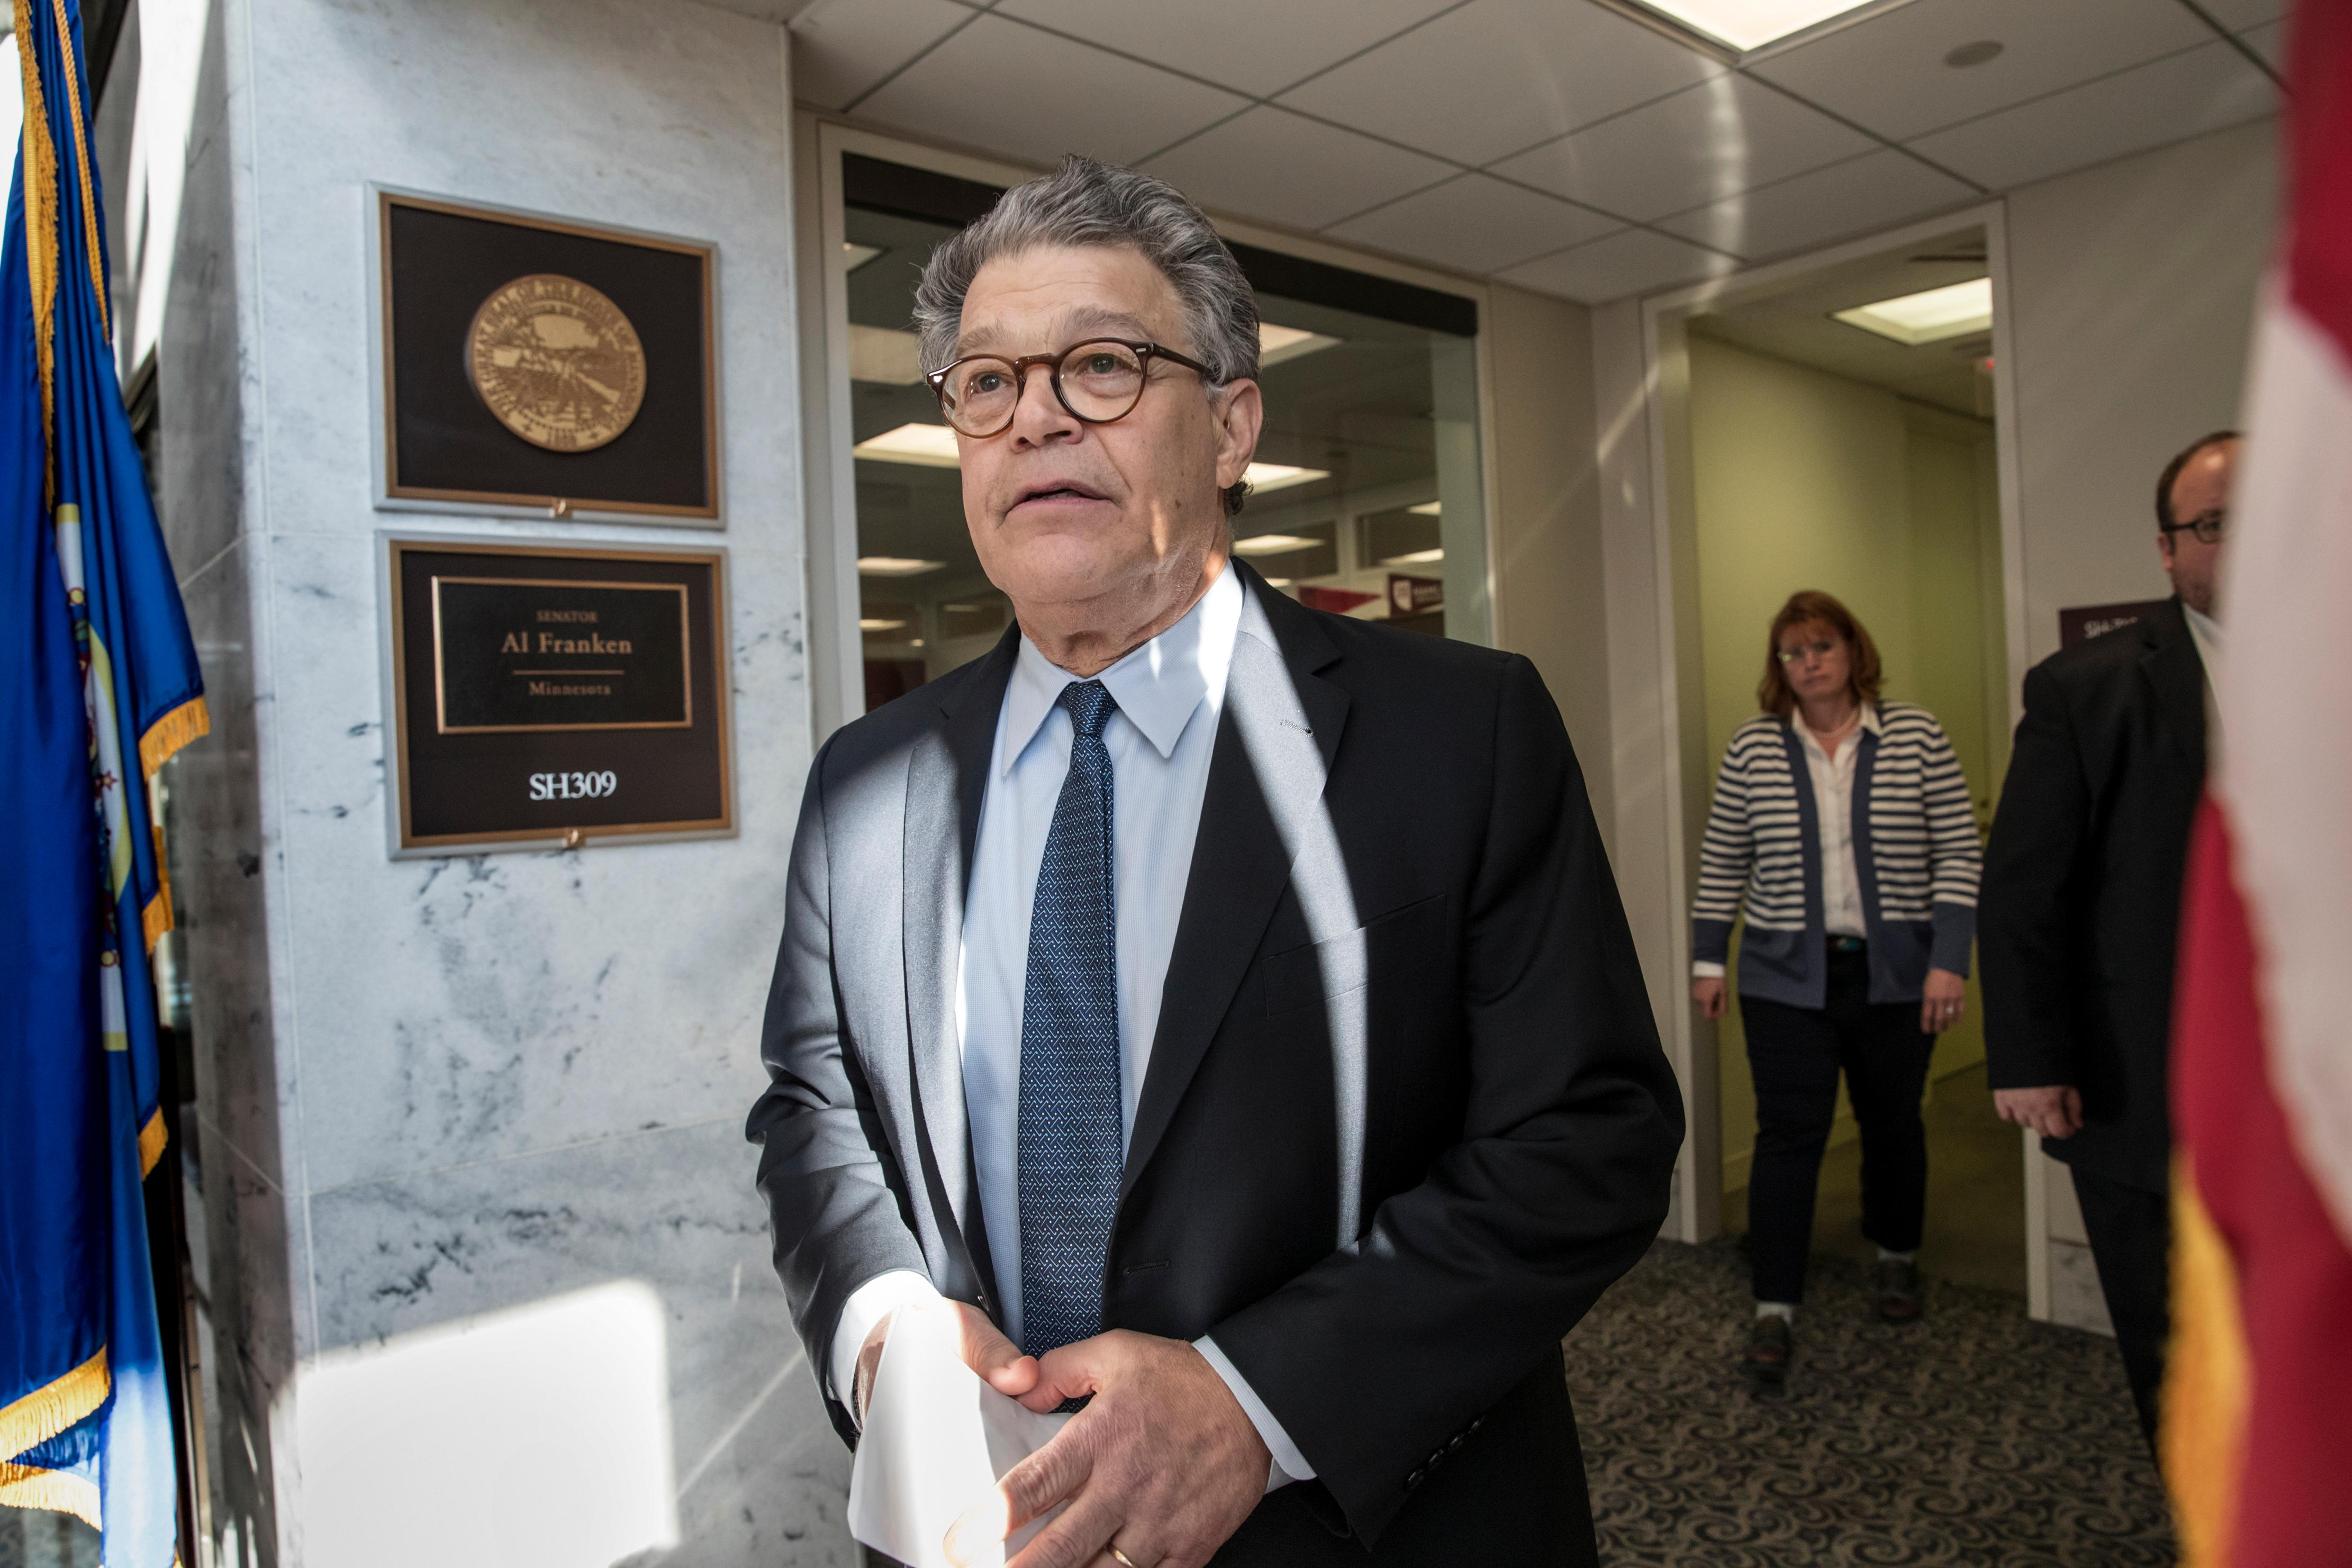 Sen. Al Franken, D-Minn., arrives to speak to the media on Capitol Hill, Monday, Nov. 27, 2017 in Washington. (AP Photo/J. Scott Applewhite)